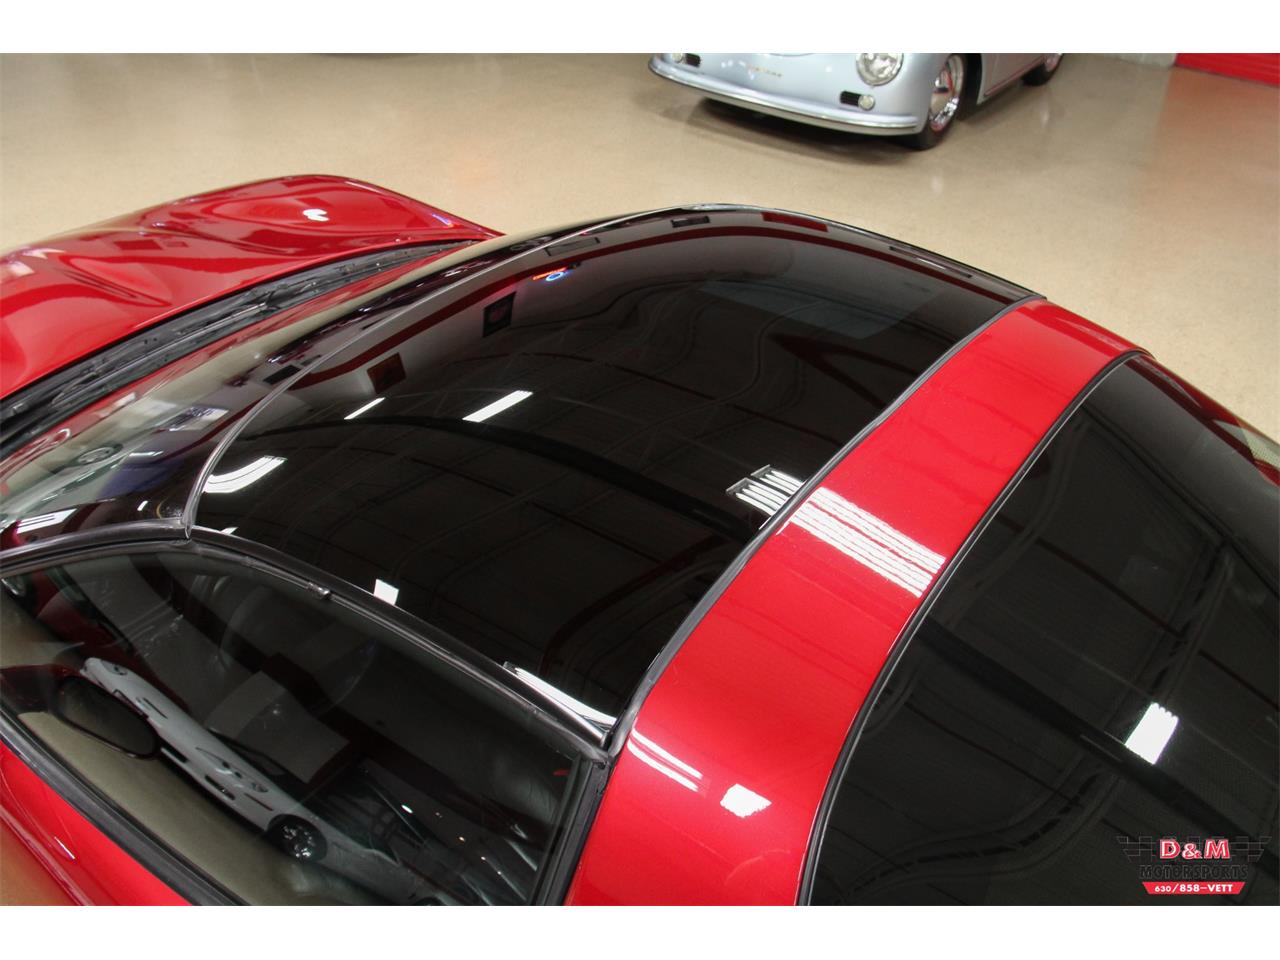 Large Picture of '00 Chevrolet Corvette Offered by D & M Motorsports - LVA3